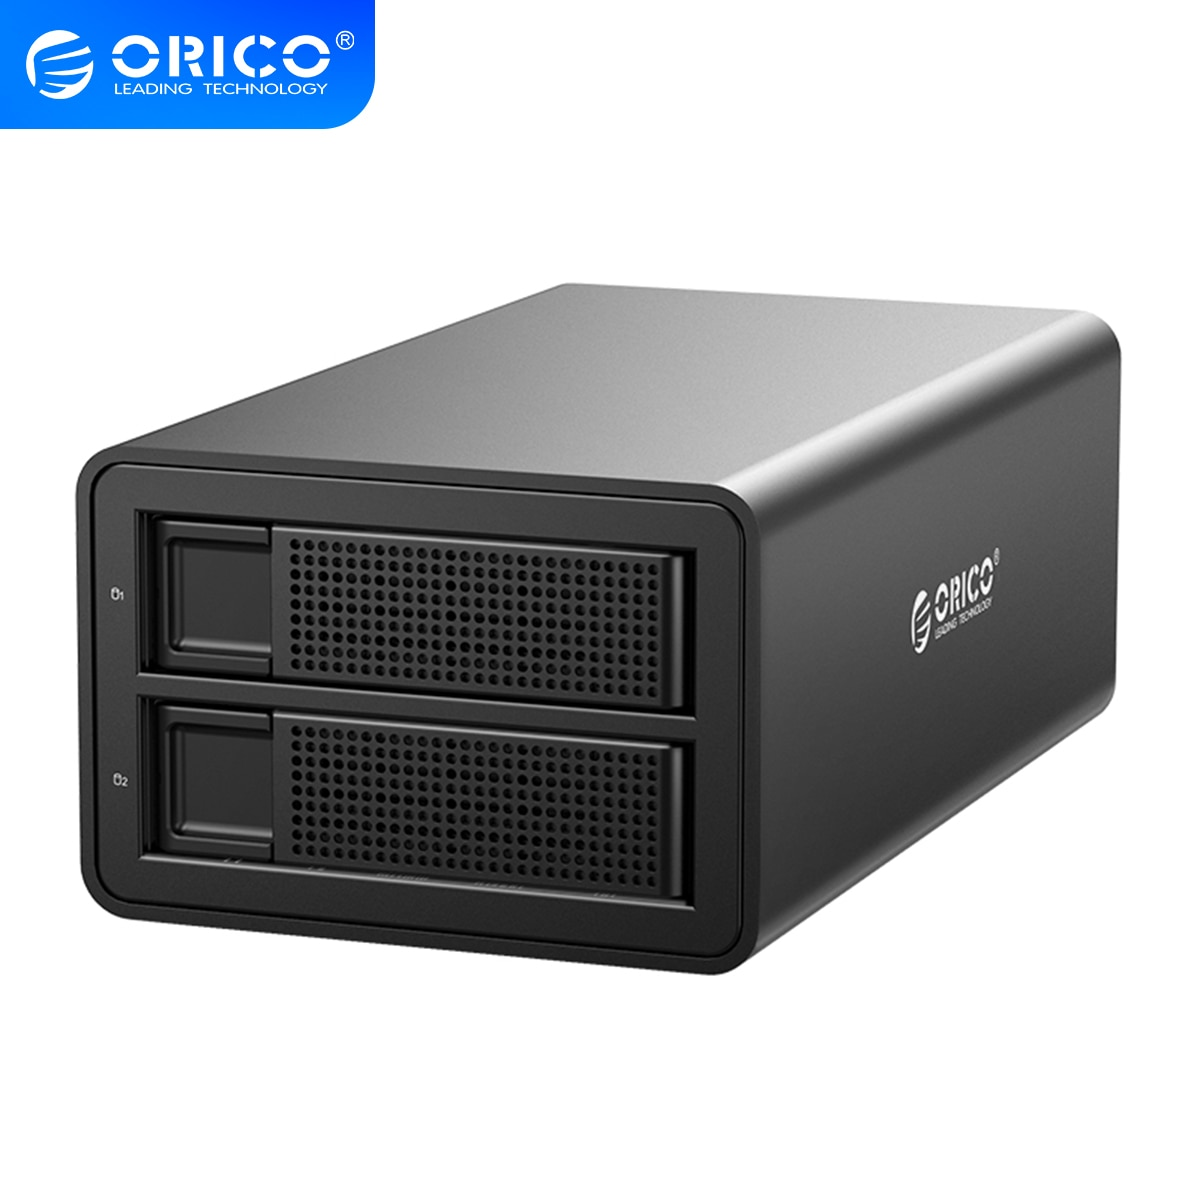 ORICO 35 Series 3.5 inch 2 Bay HDD Docking Station Support UASP 32TB With 48W Power Hard Drive Case For 2.5 3.5 Inch Hard Drive